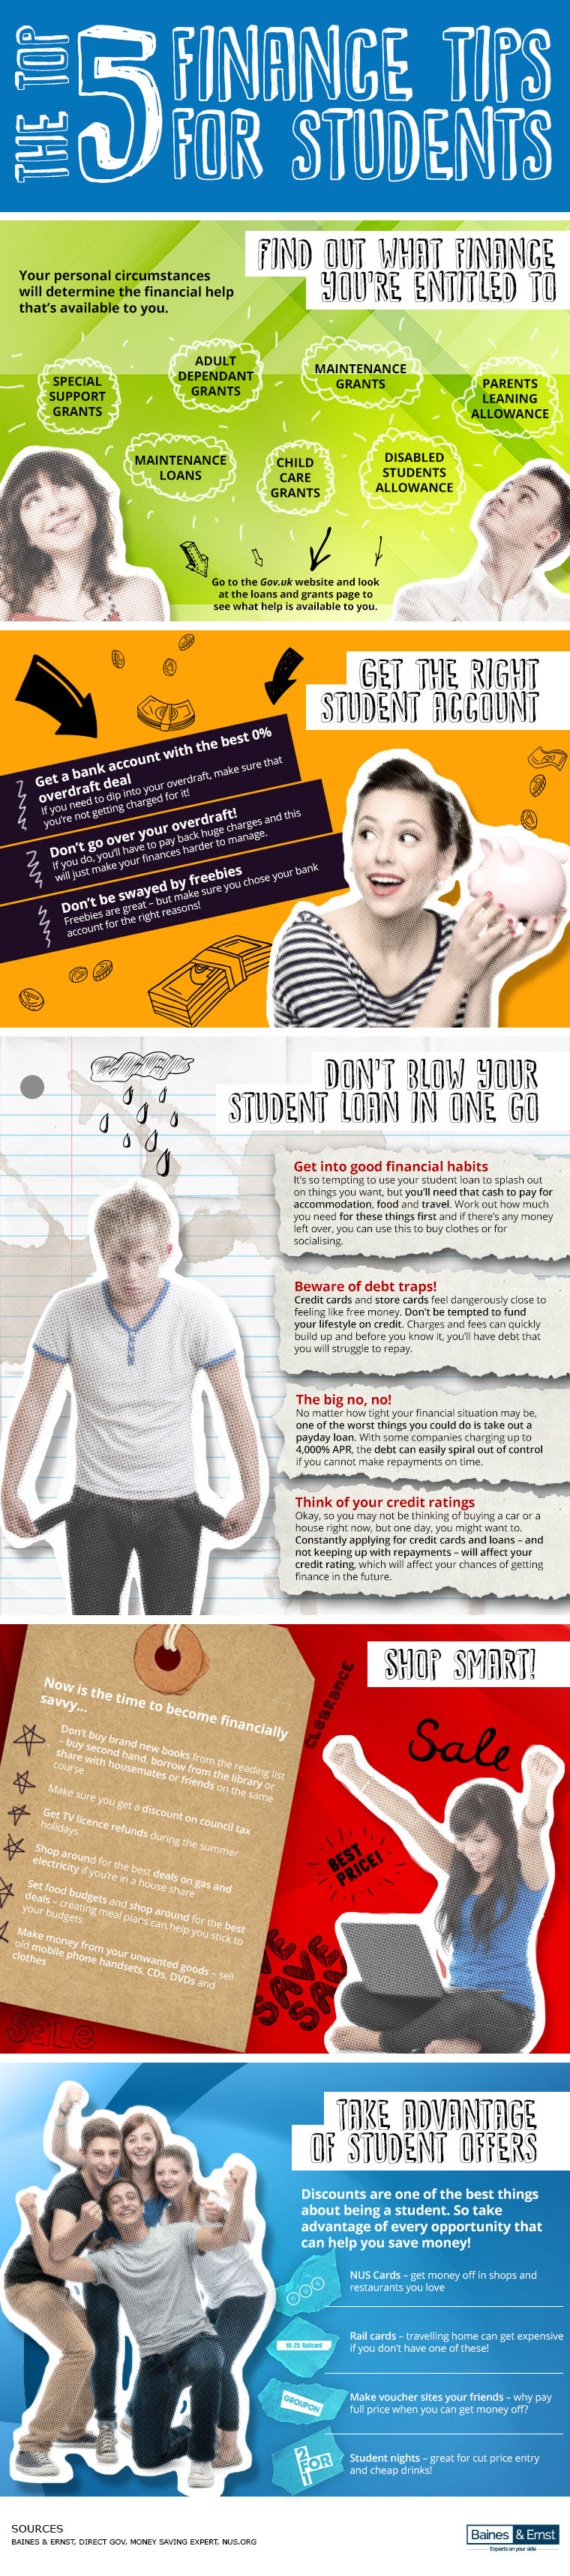 Infographic: Top 5 Finance Tips for Students in the UK